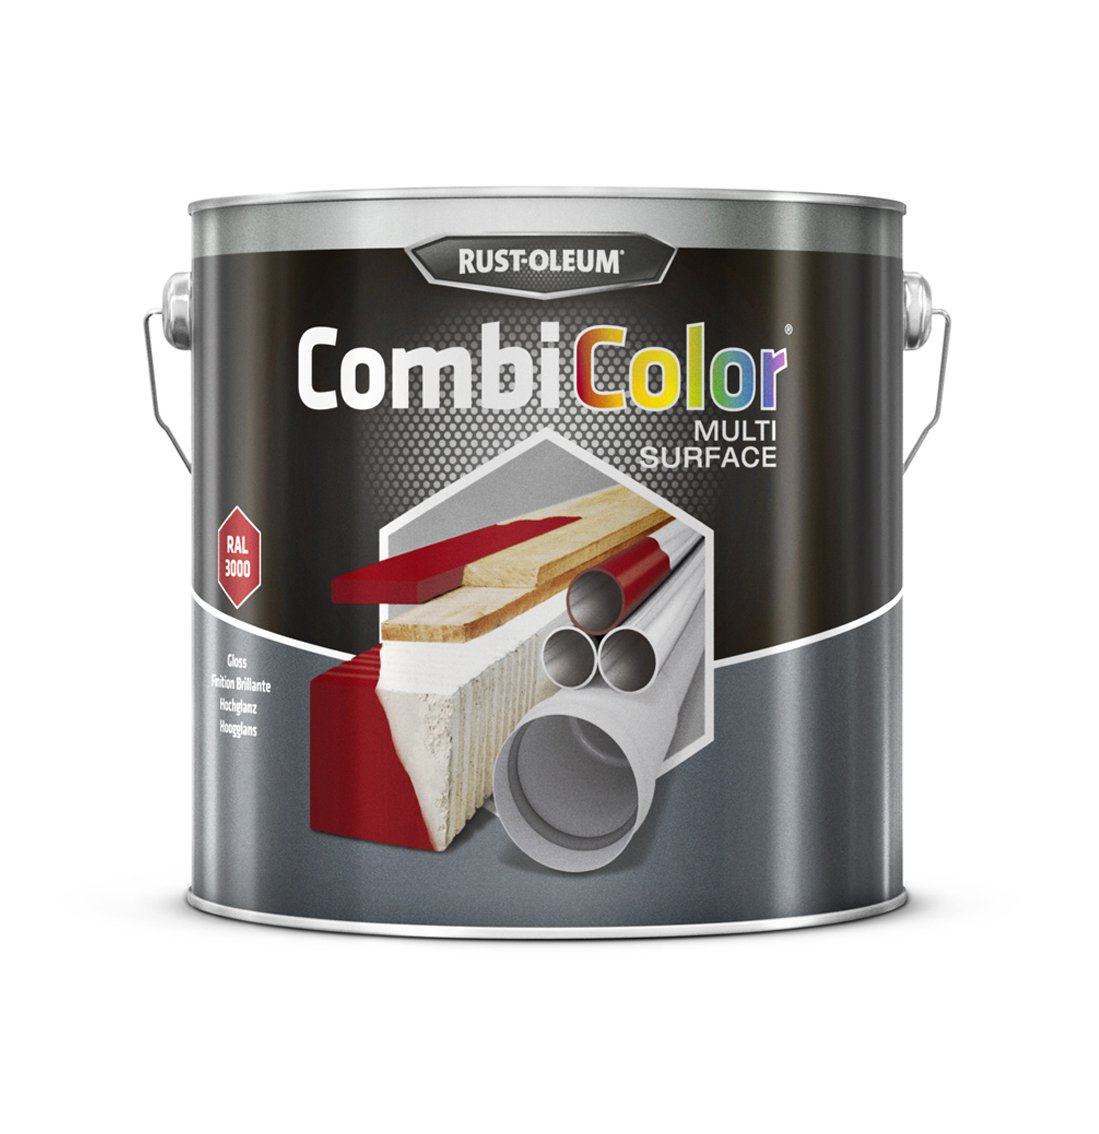 RUST-OLEUM 7365MS.2.5 Combicolor Multi-Surface, One Paint, Many Surfaces, Bright red-RAL 3000